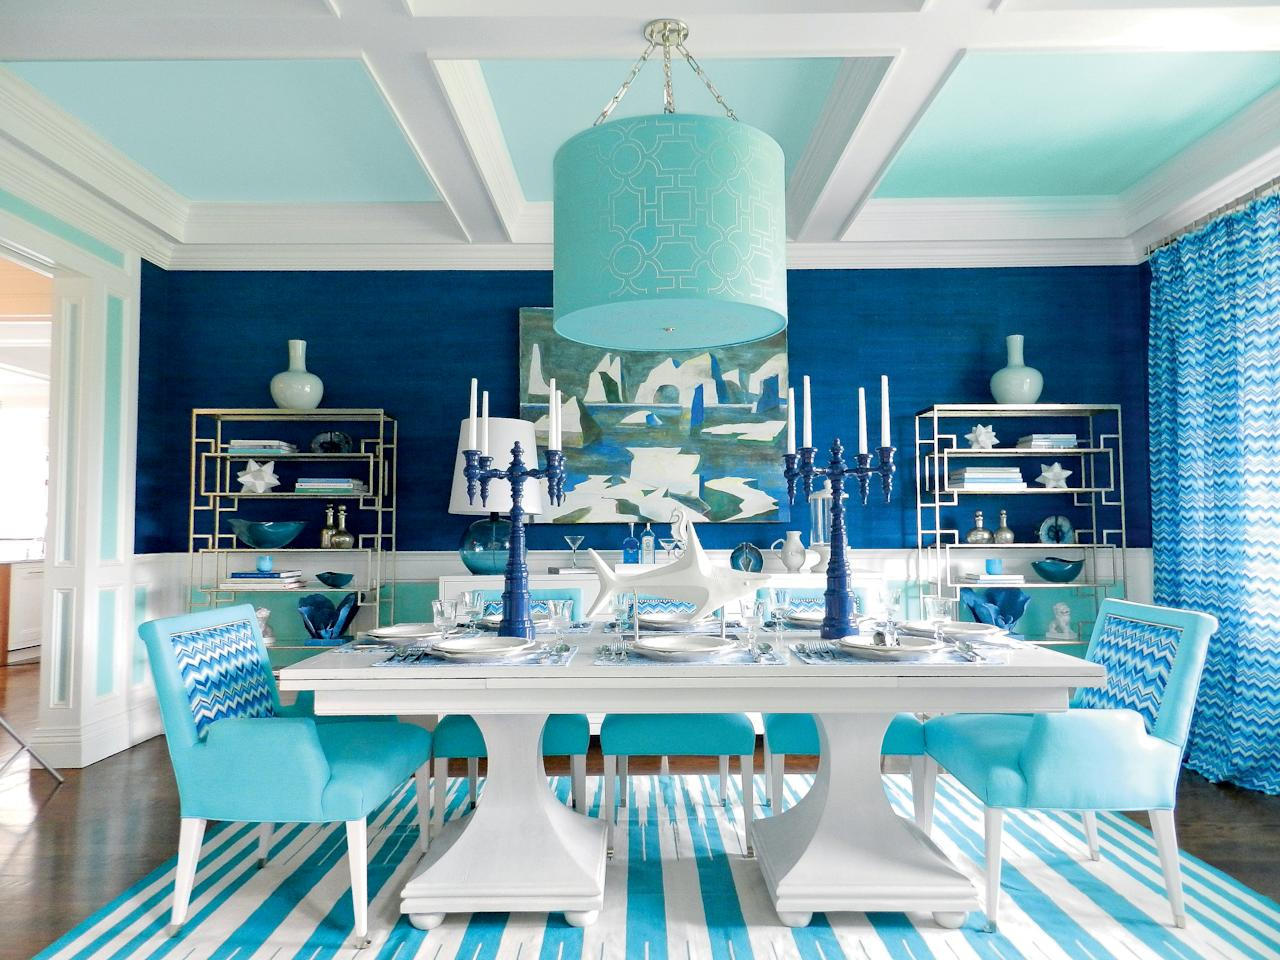 10 Fresh Ways To Decorate With Stripes